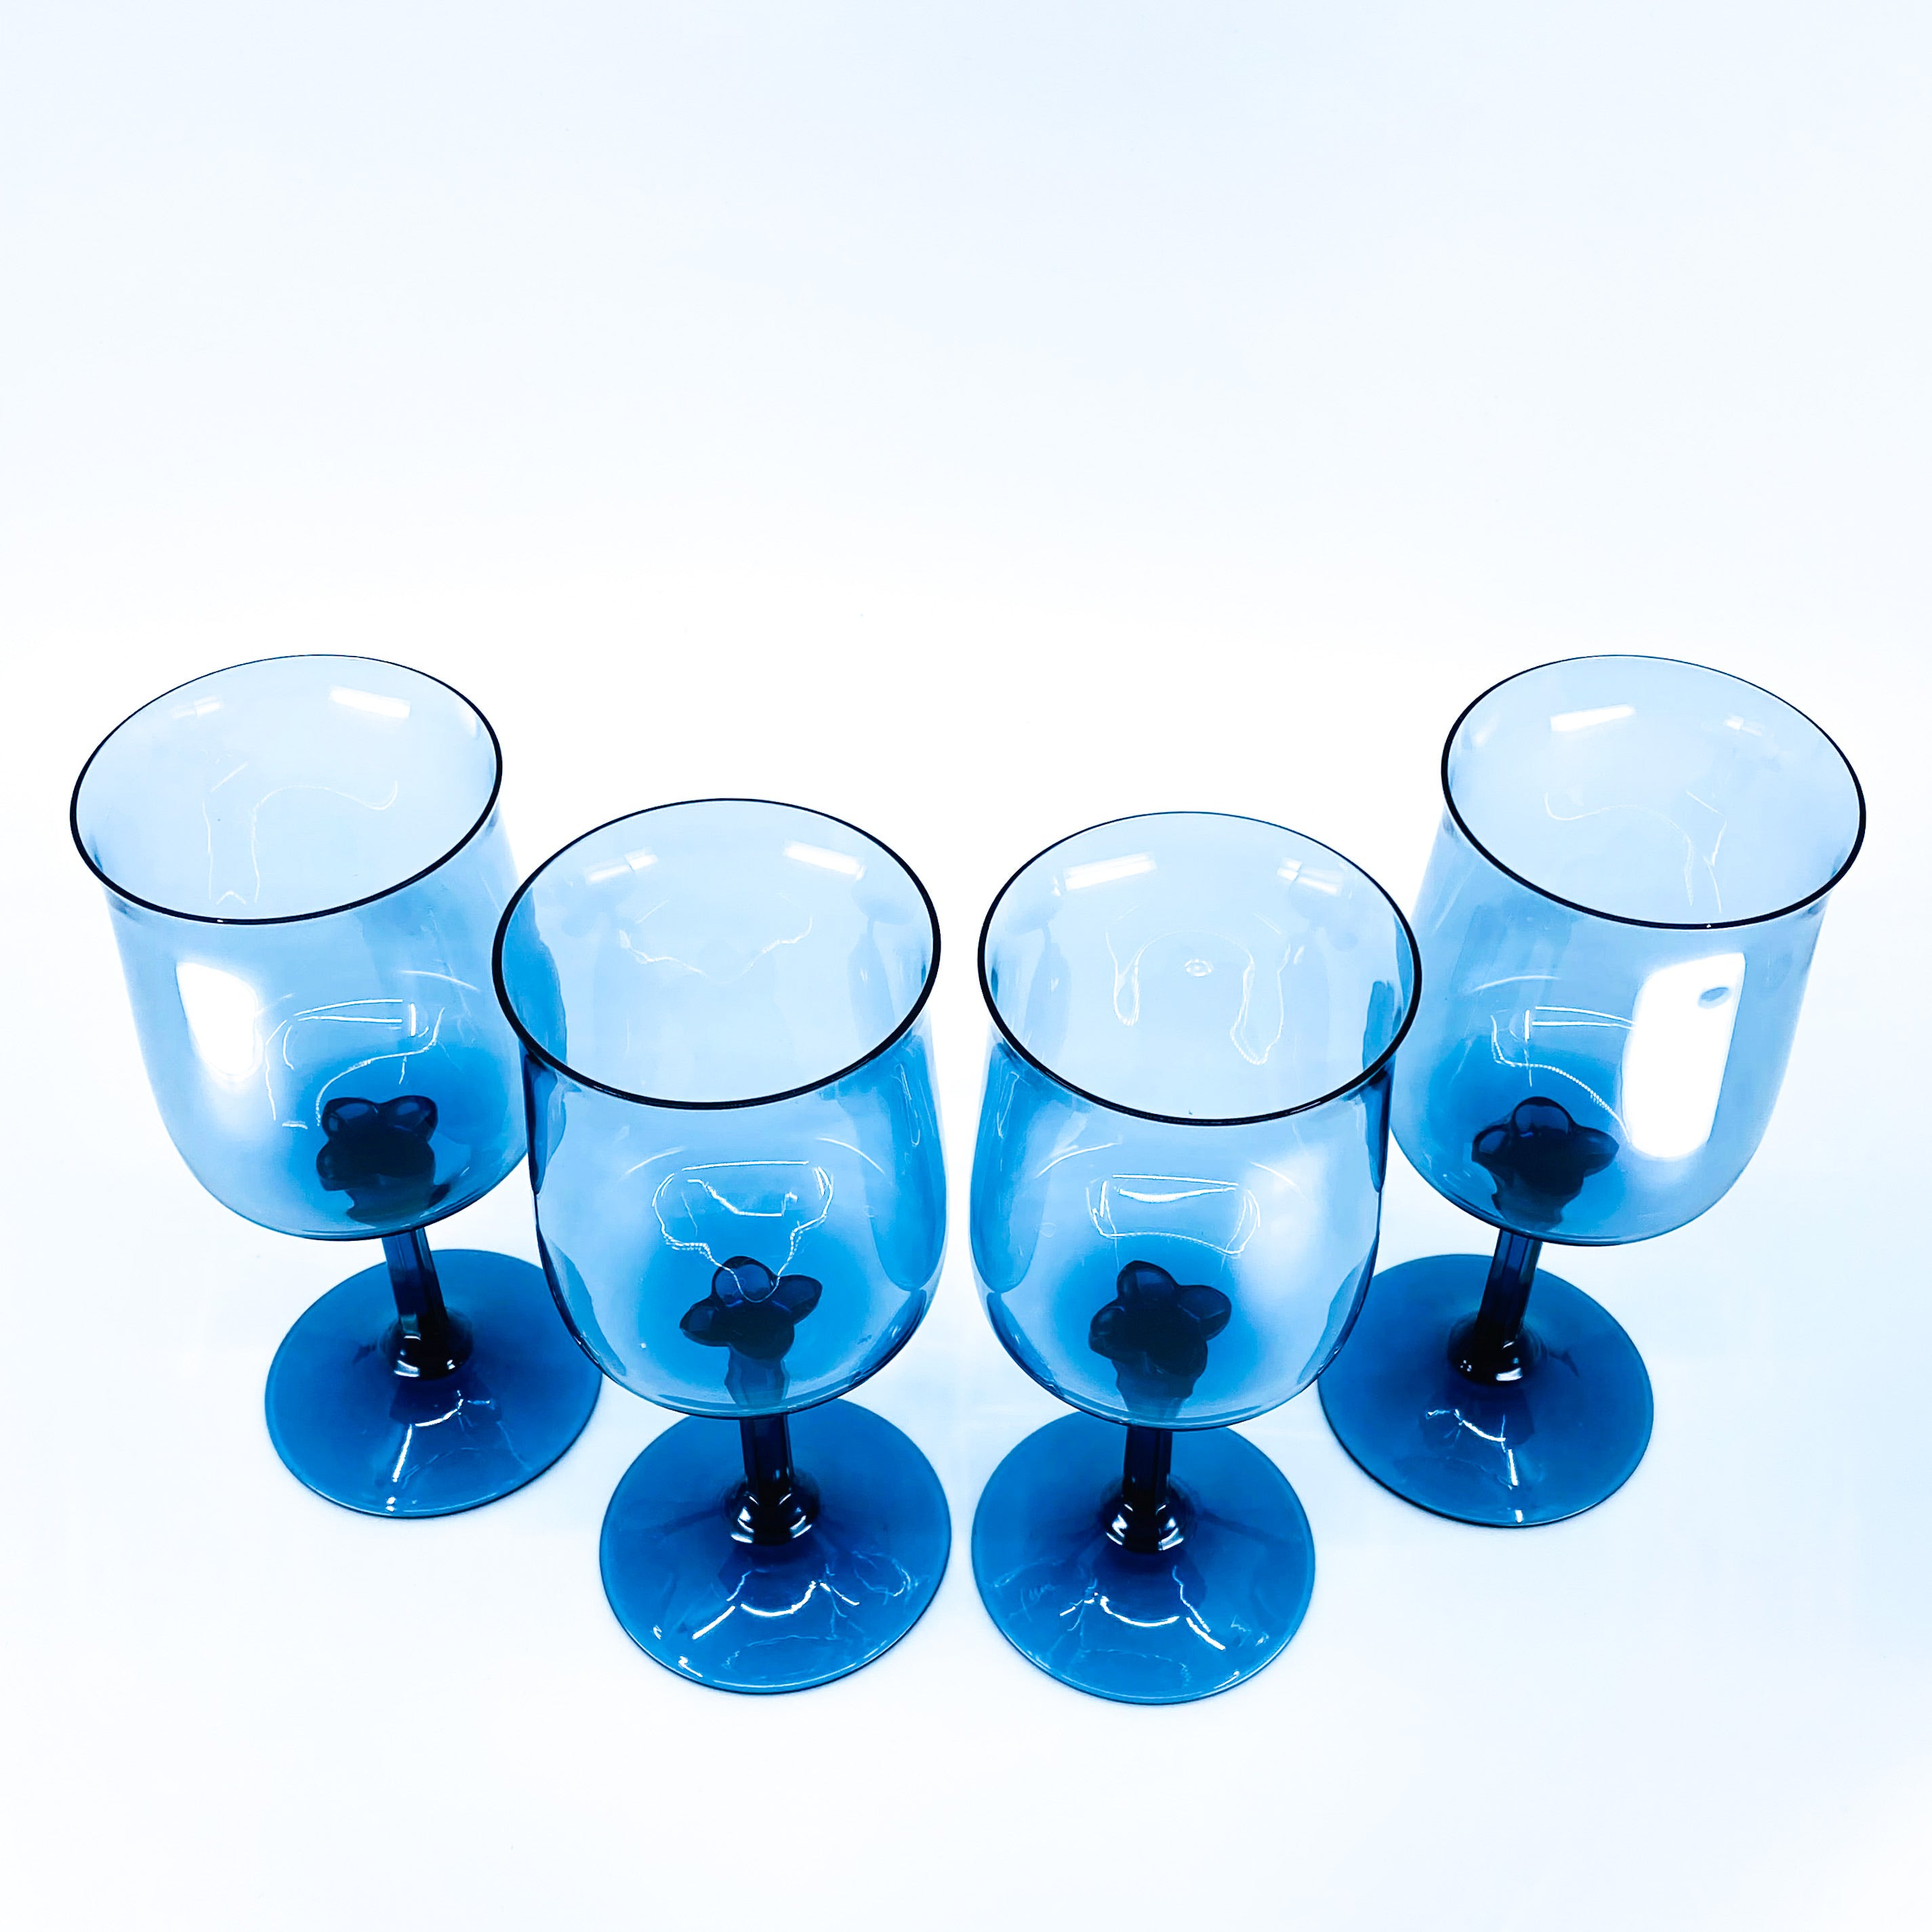 S/4 Lenox Blue Mist Tulip Shaped Wine Glasses